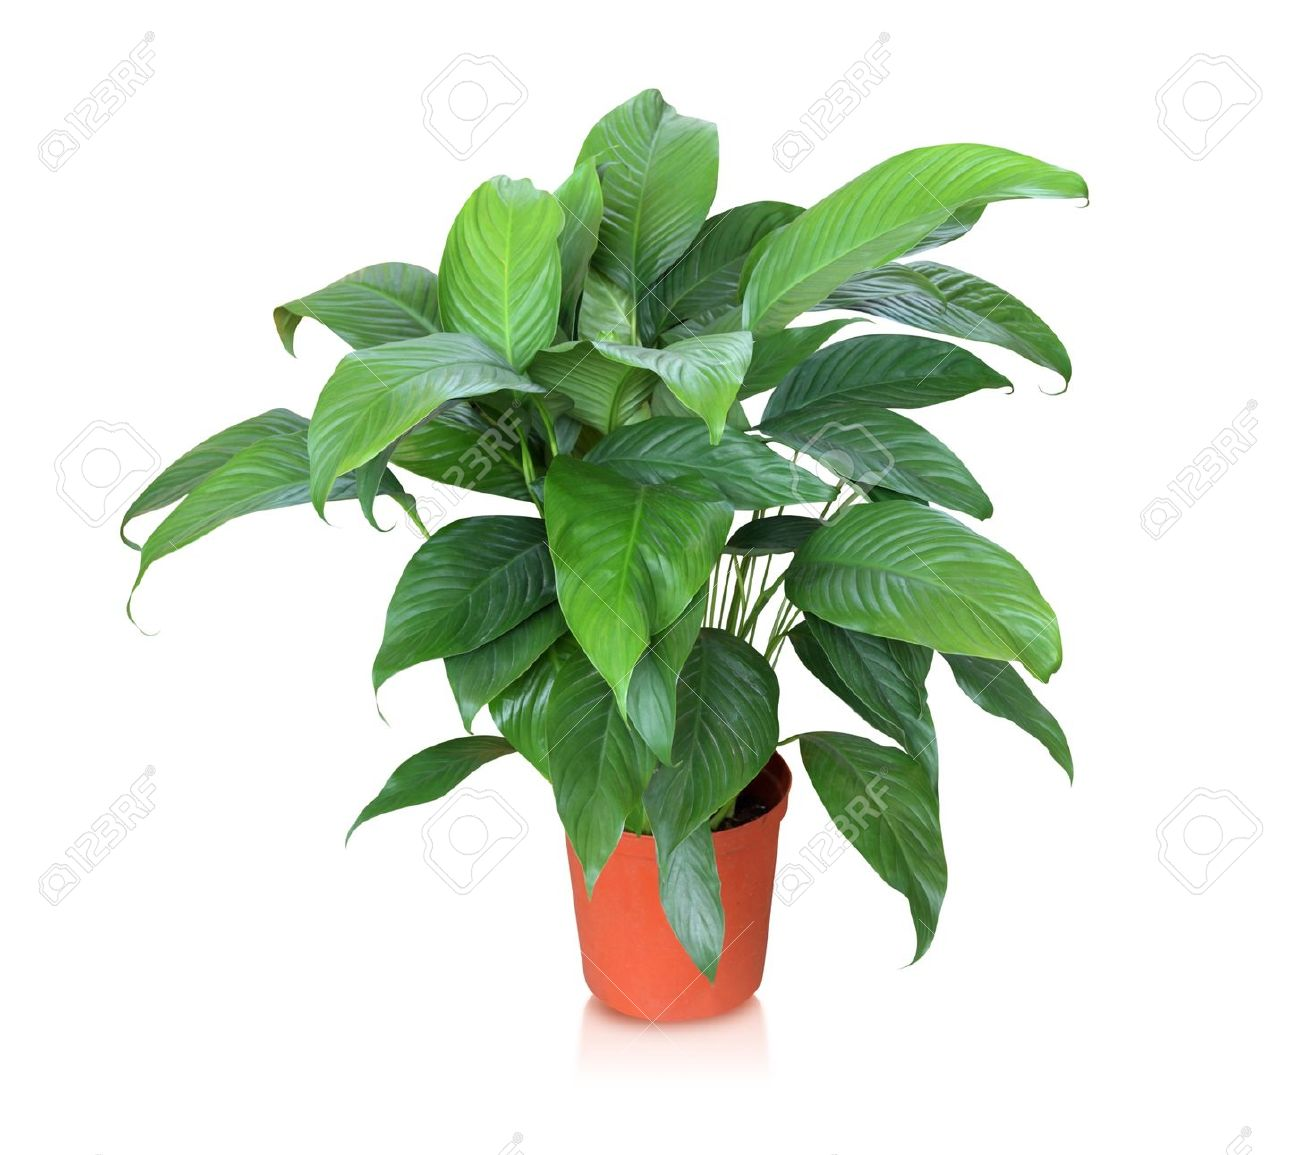 tropical house plant stock photos & pictures. royalty free